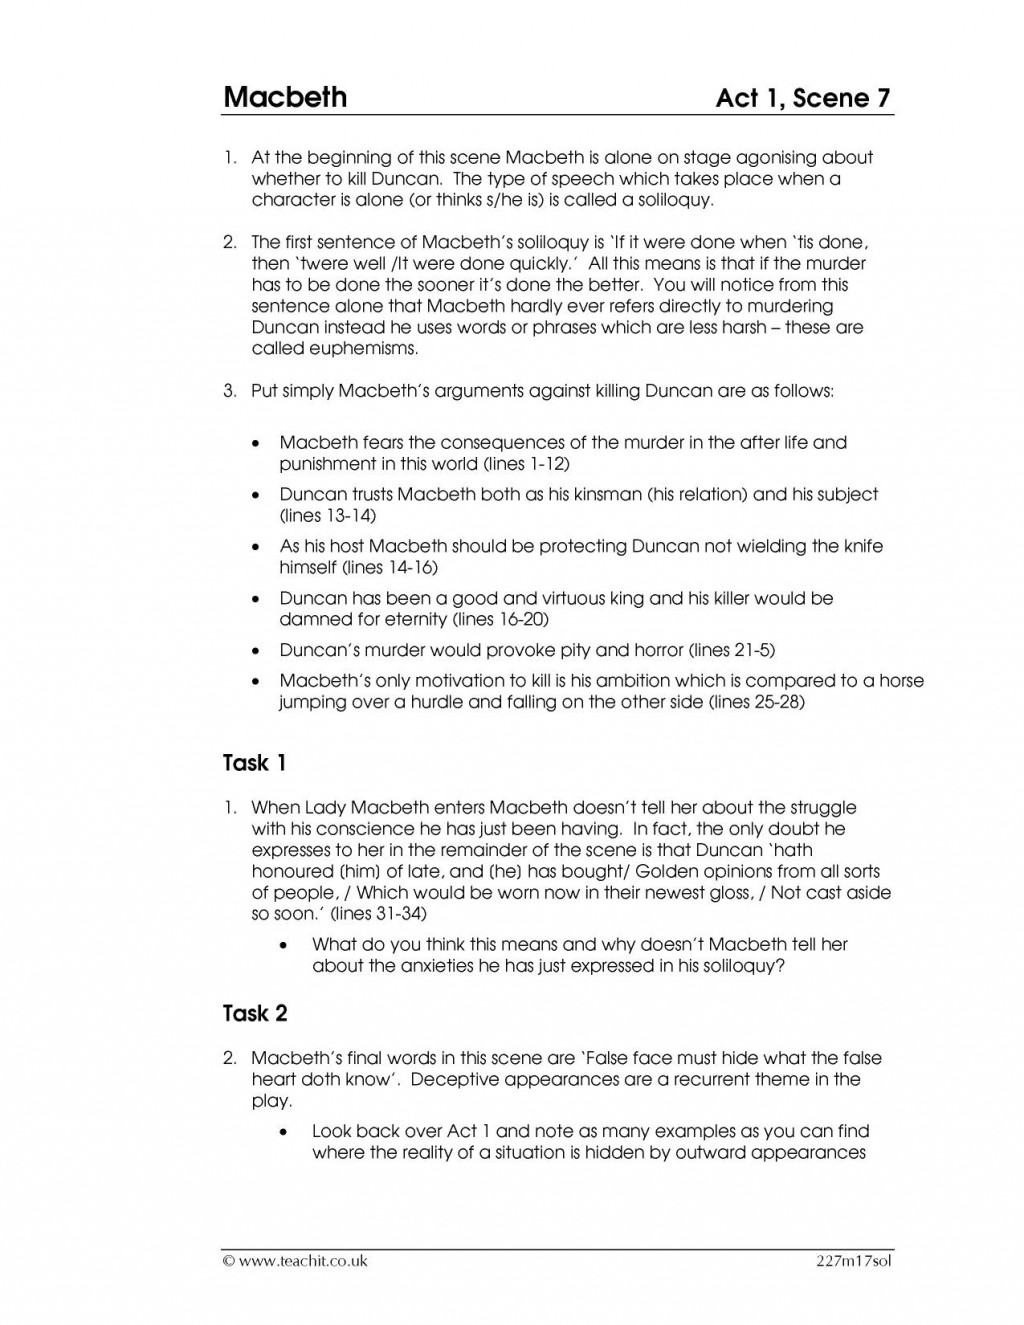 008 Essay On Macbeth Example X48 Php Pagespeed Ic Marvelous And Lady Macbeth's Relationship Literary As A Tragic Hero Plan Large